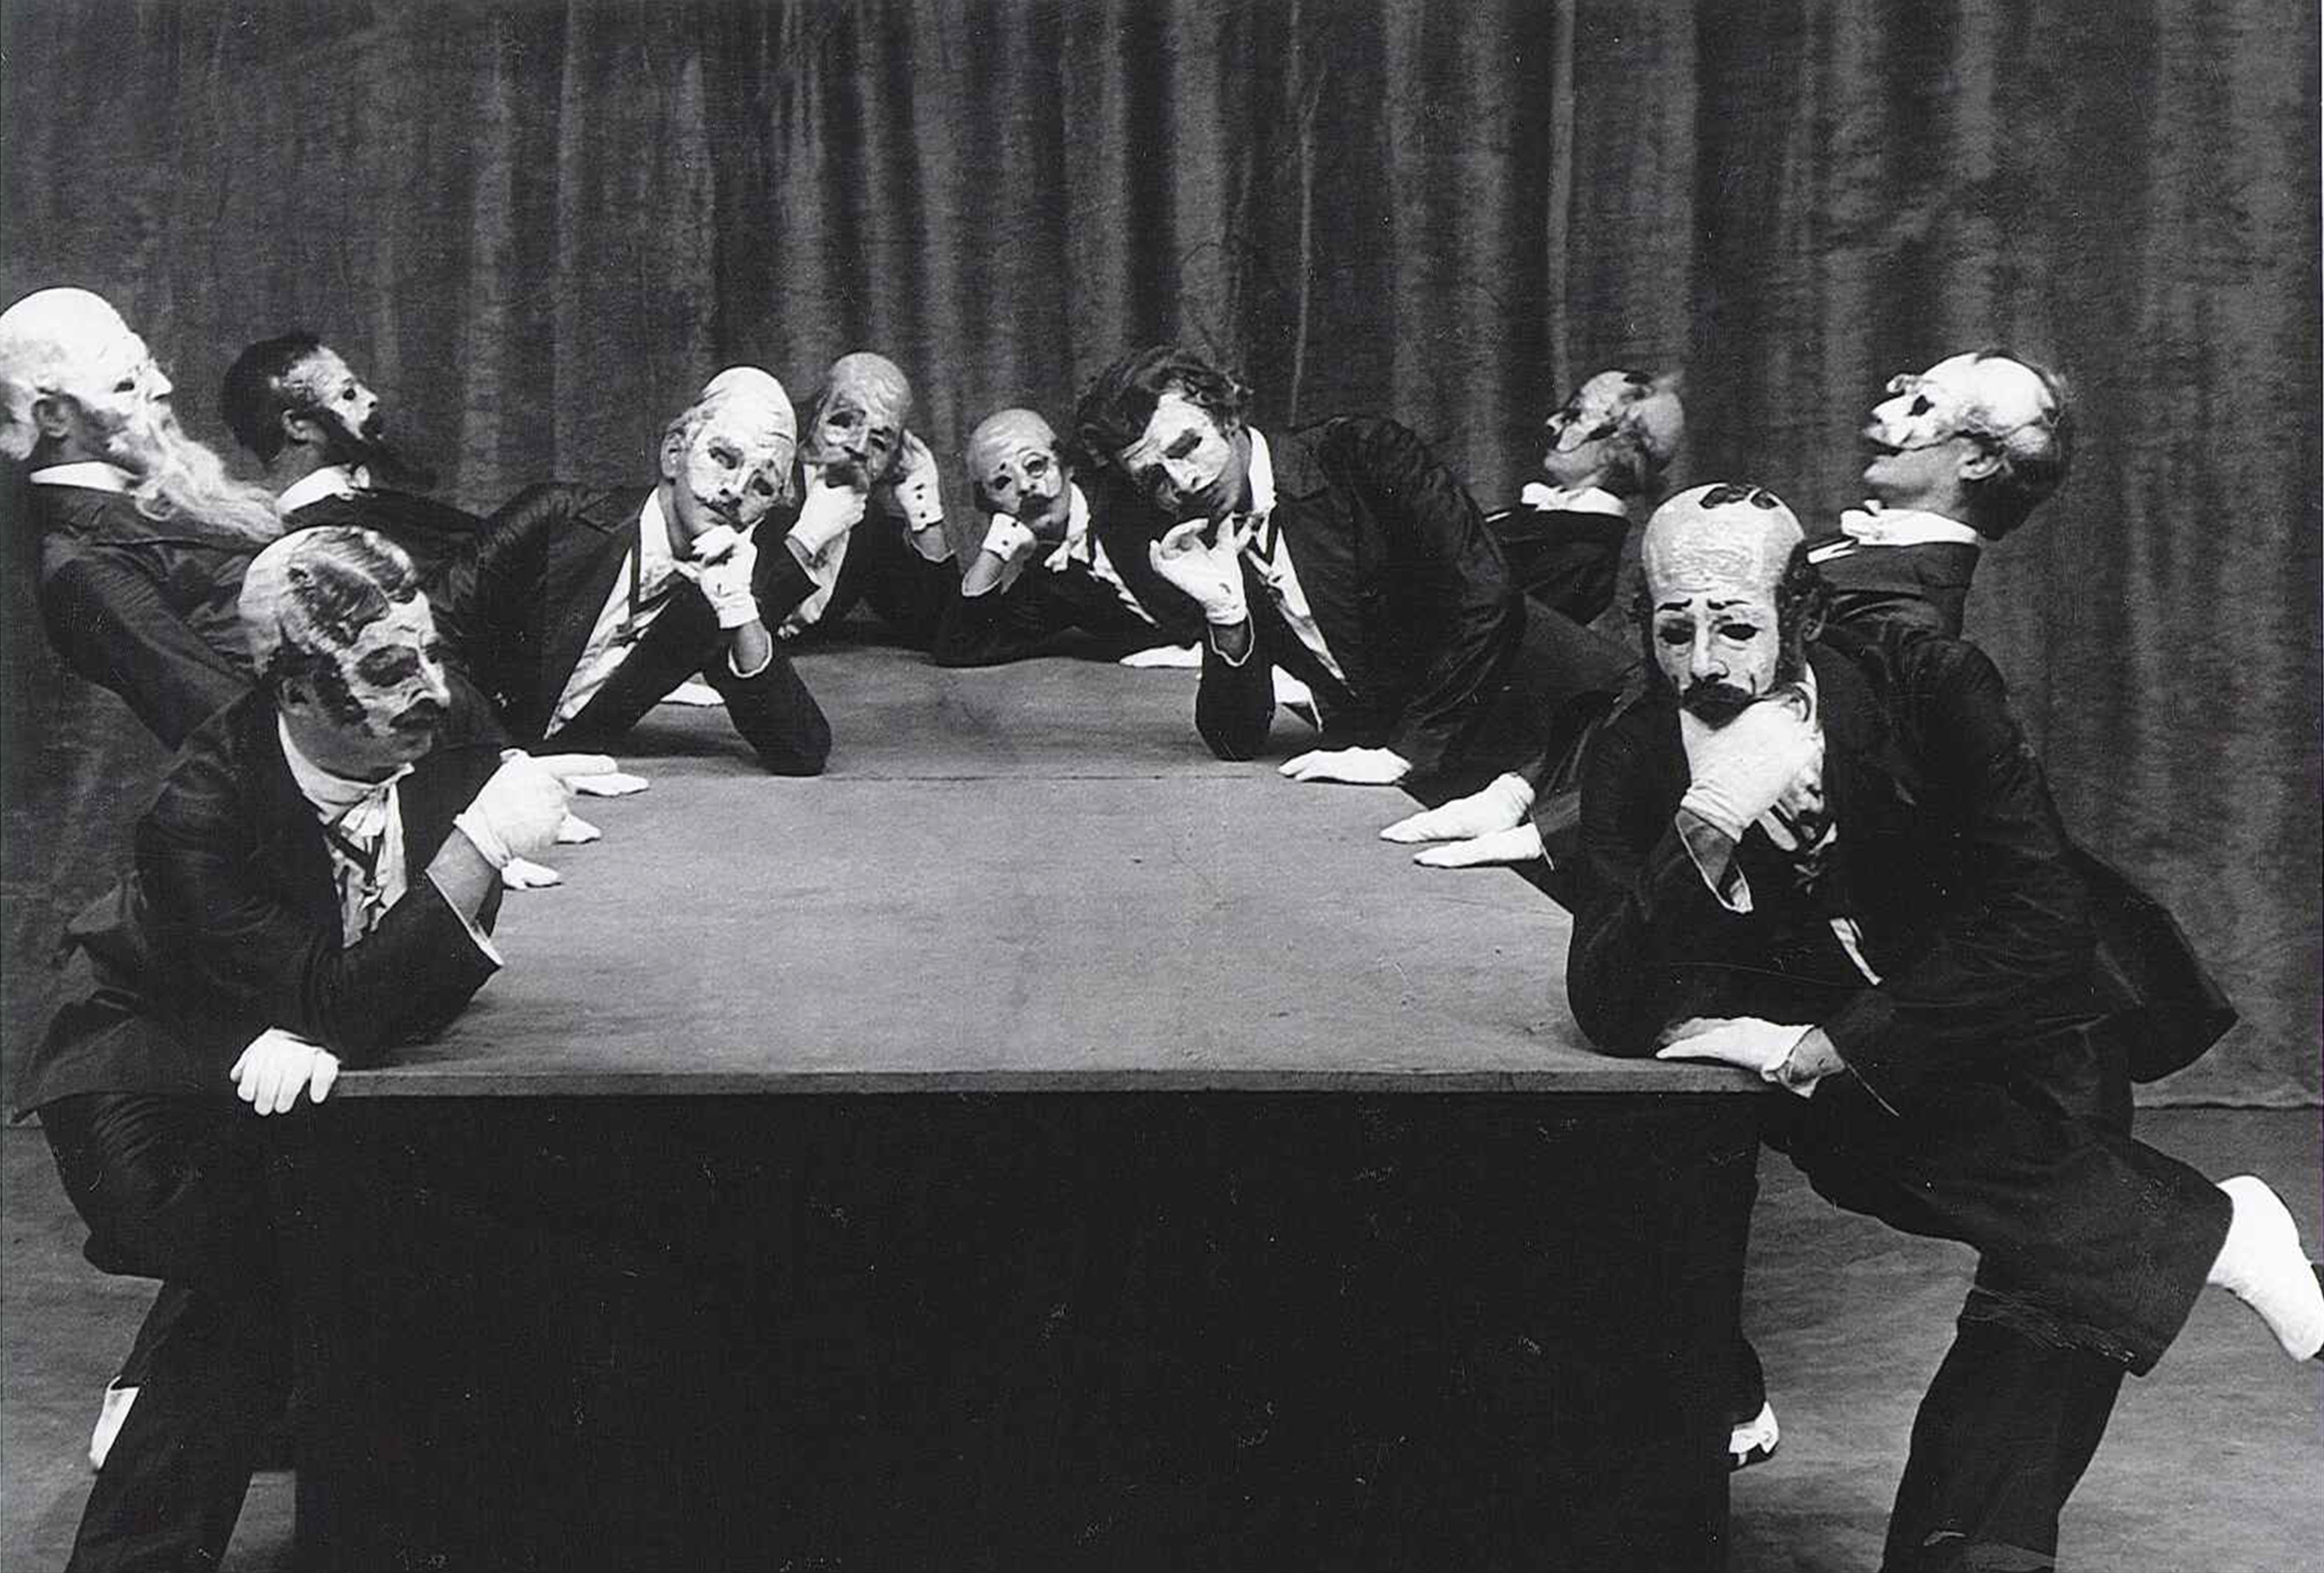 The Green Table, 1932. The Gentlemen in Black. Photo by Albert Renger-Patzsch. Courtesy of Kurt Jooss Archives / Deutsches Tanzarchiv Köln.